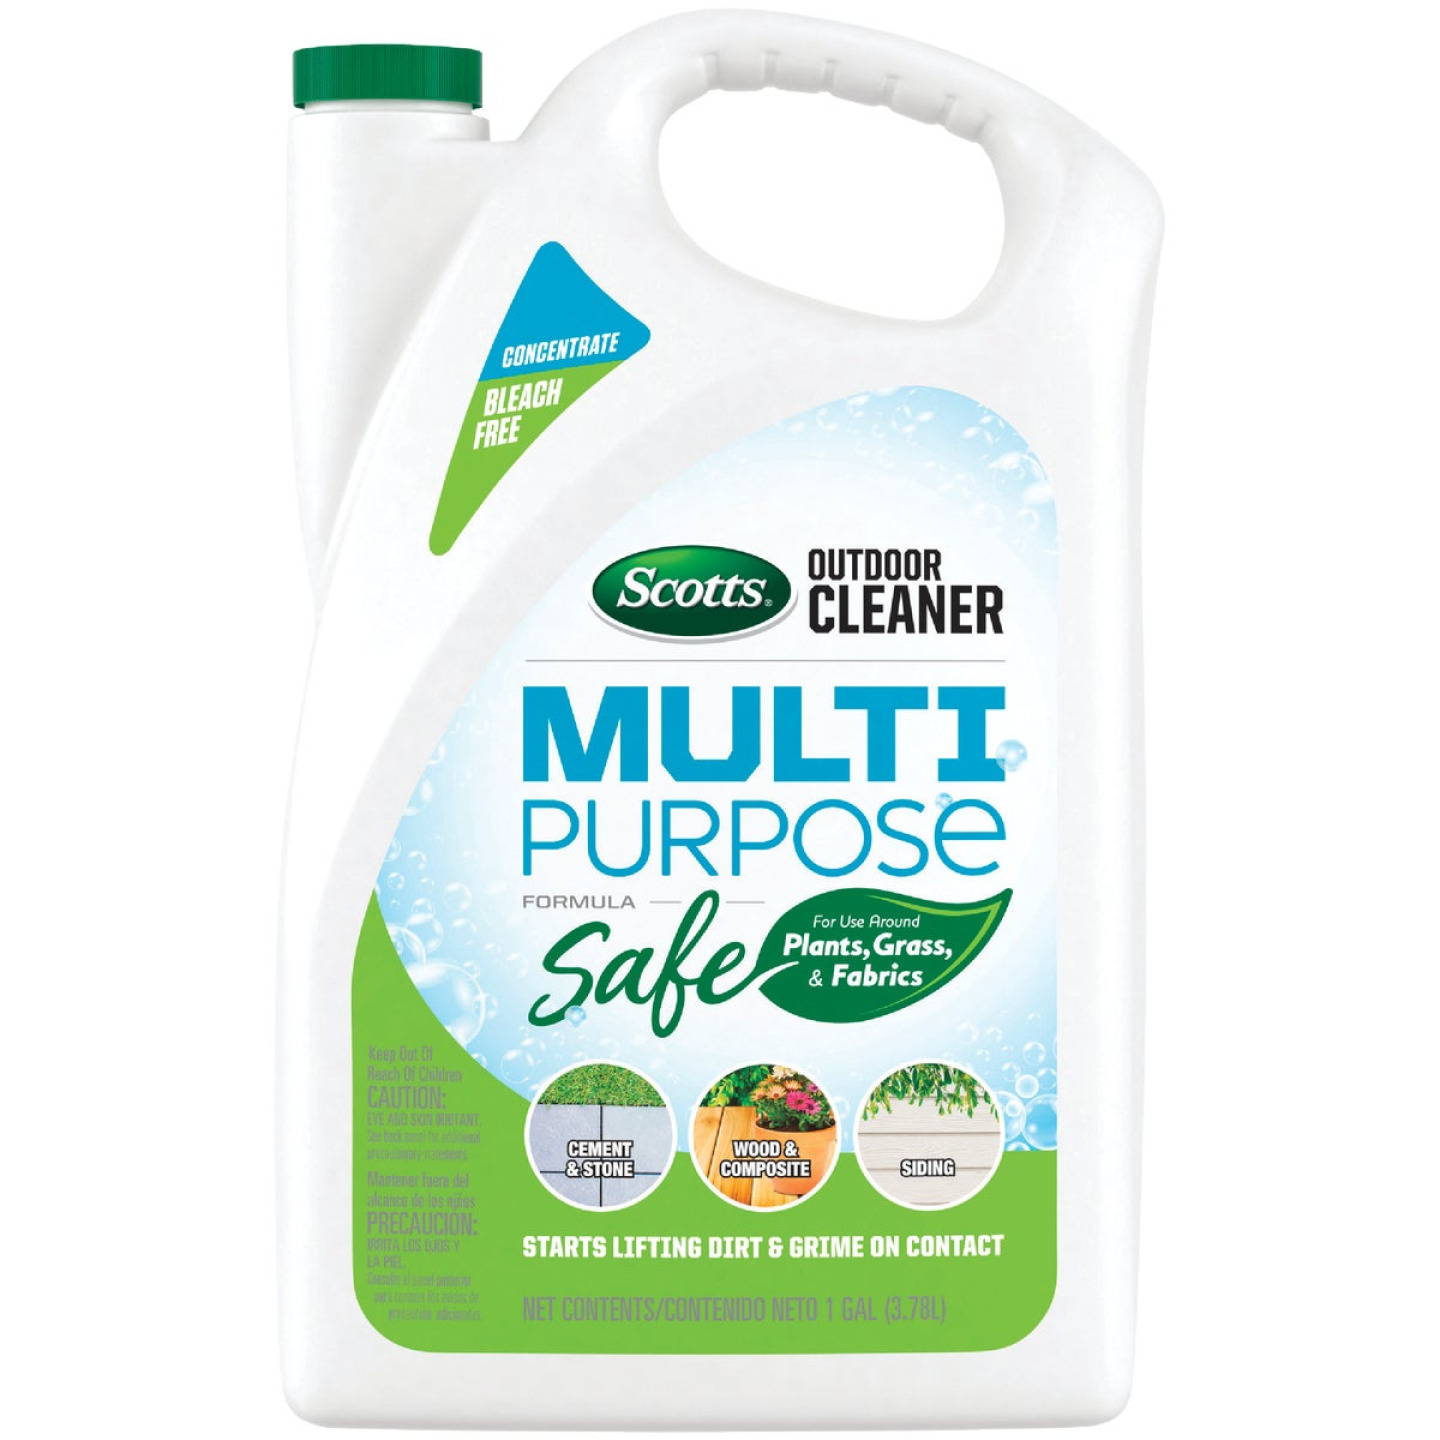 Scotts 1 Gal. Concentrate Multi Surface Outdoor Cleaner Plus OxiClean Image 1